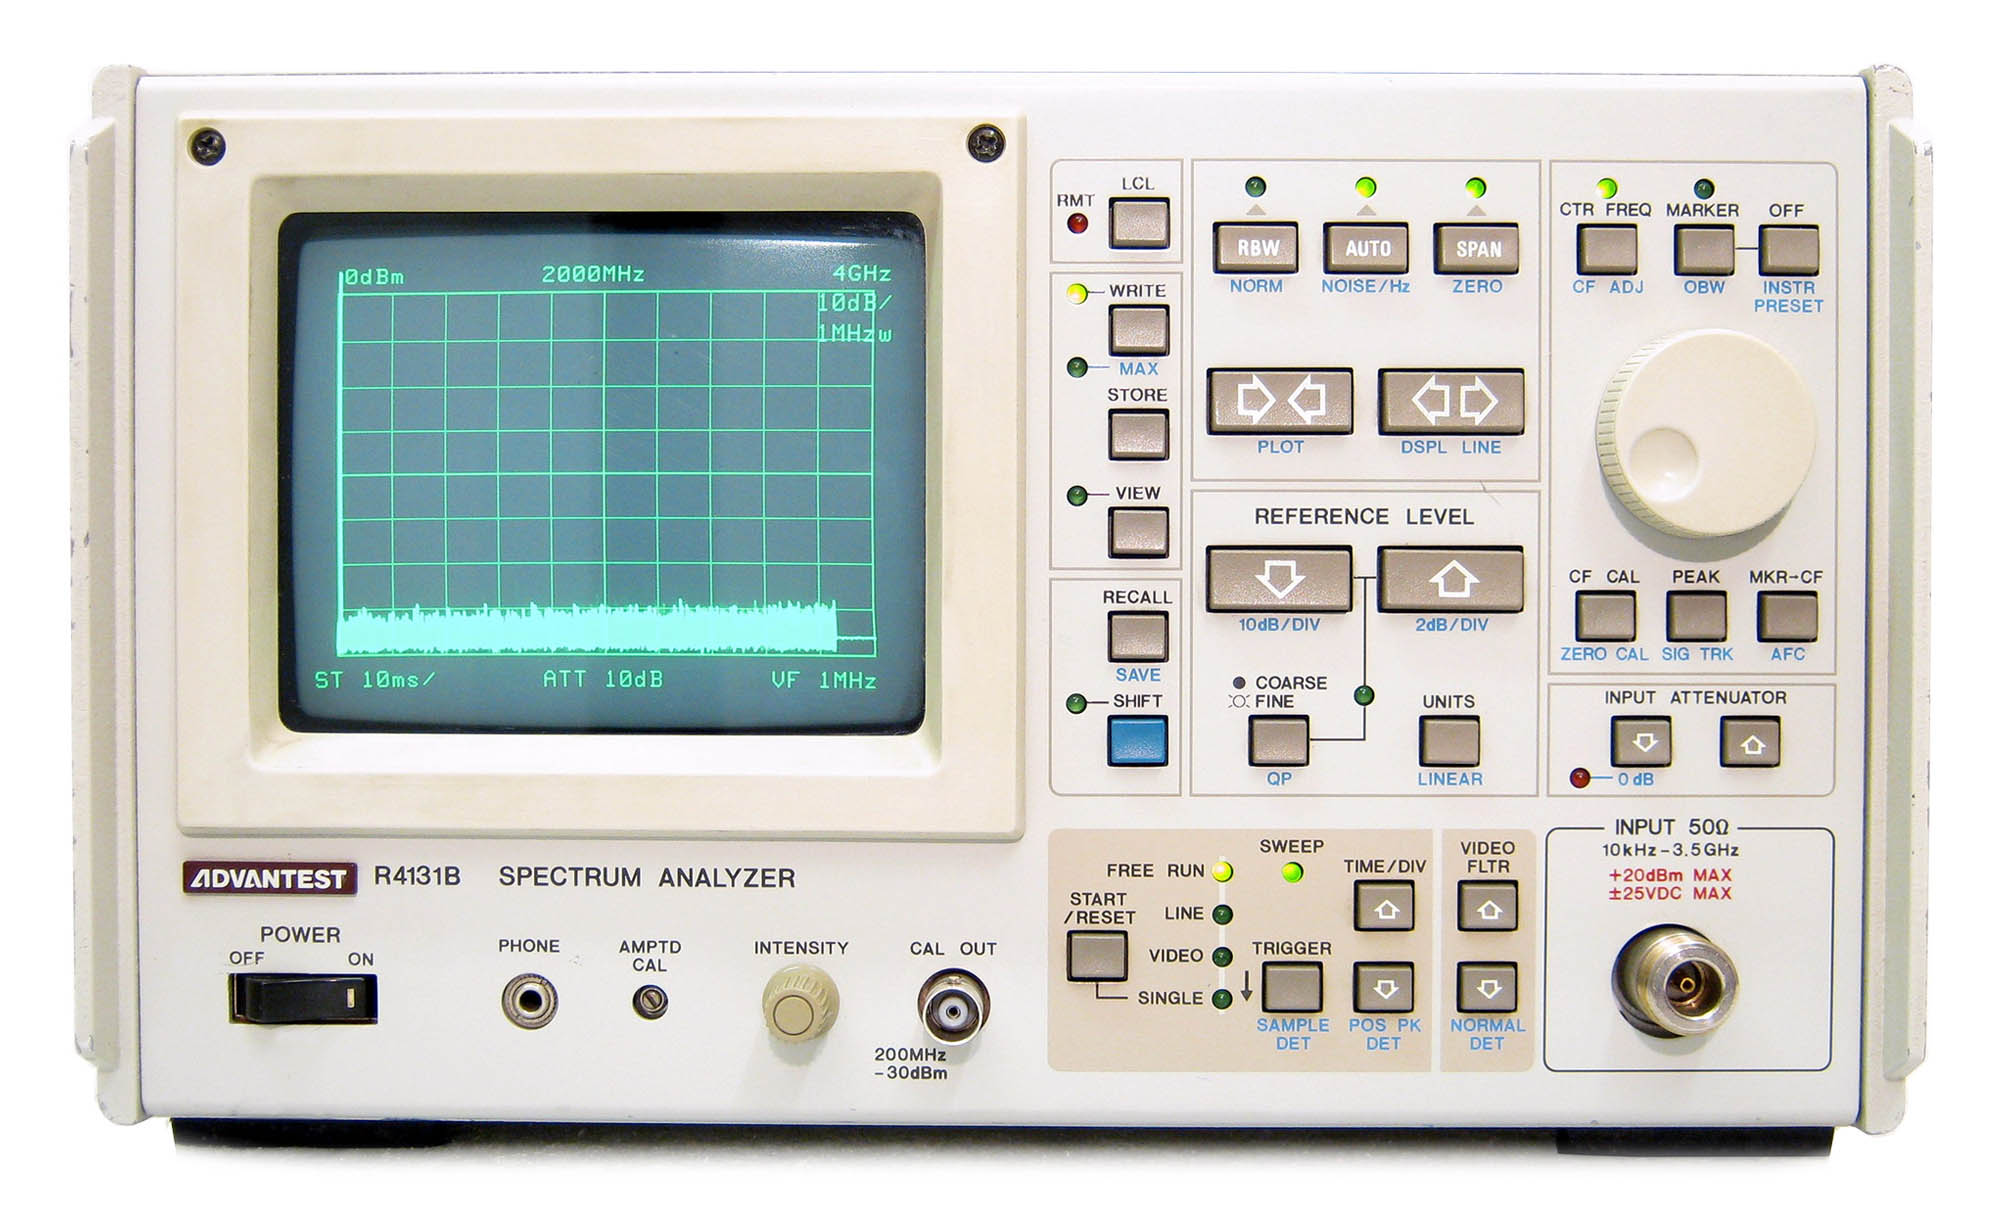 Advantest R4131D Spectrum Analyzer 10 kHz to 3.5 GHz